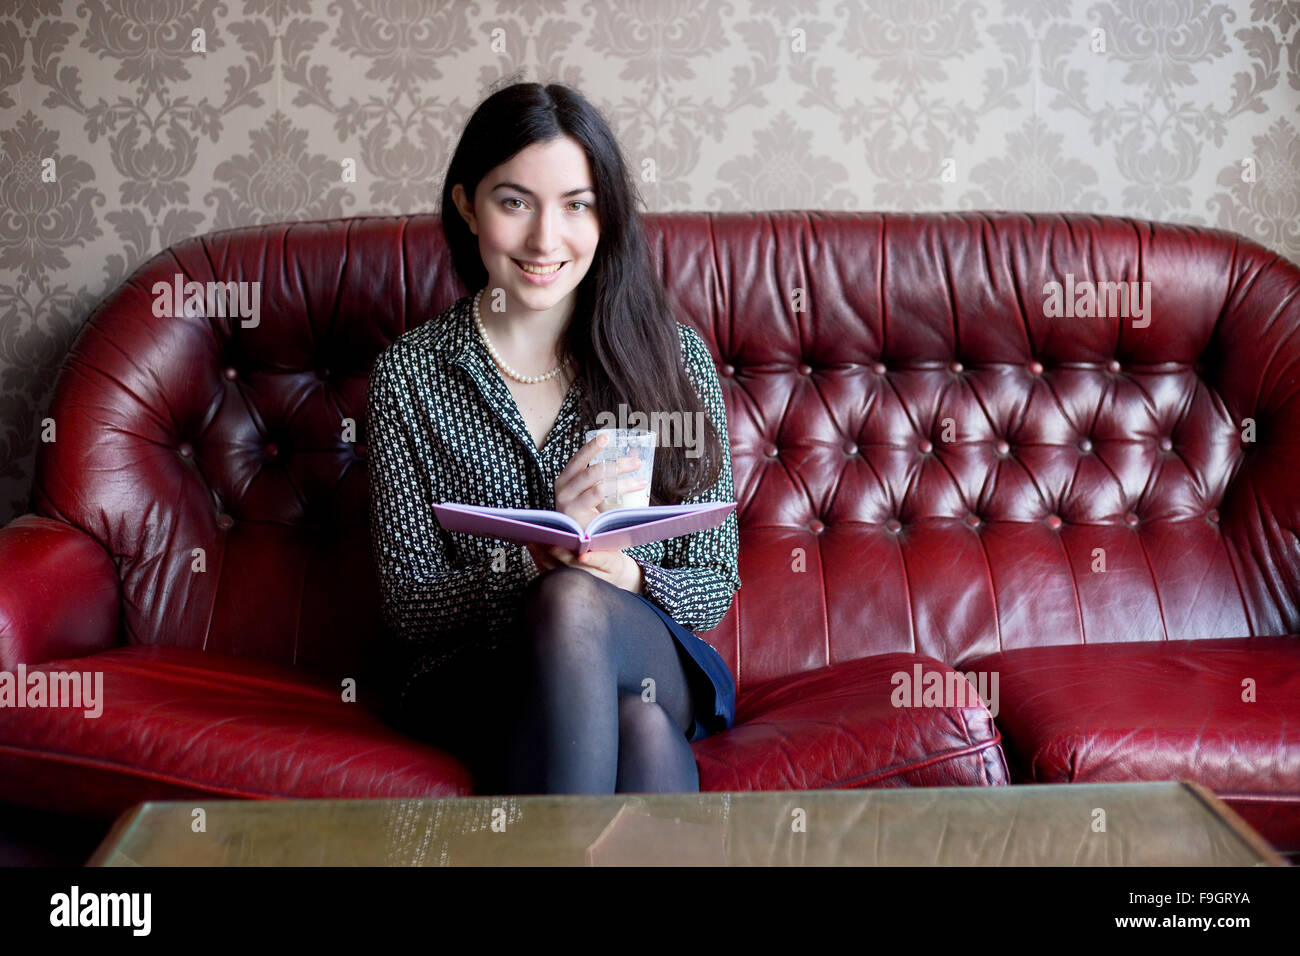 Young woman sitting on a sofa with a book and a drink - Stock Image